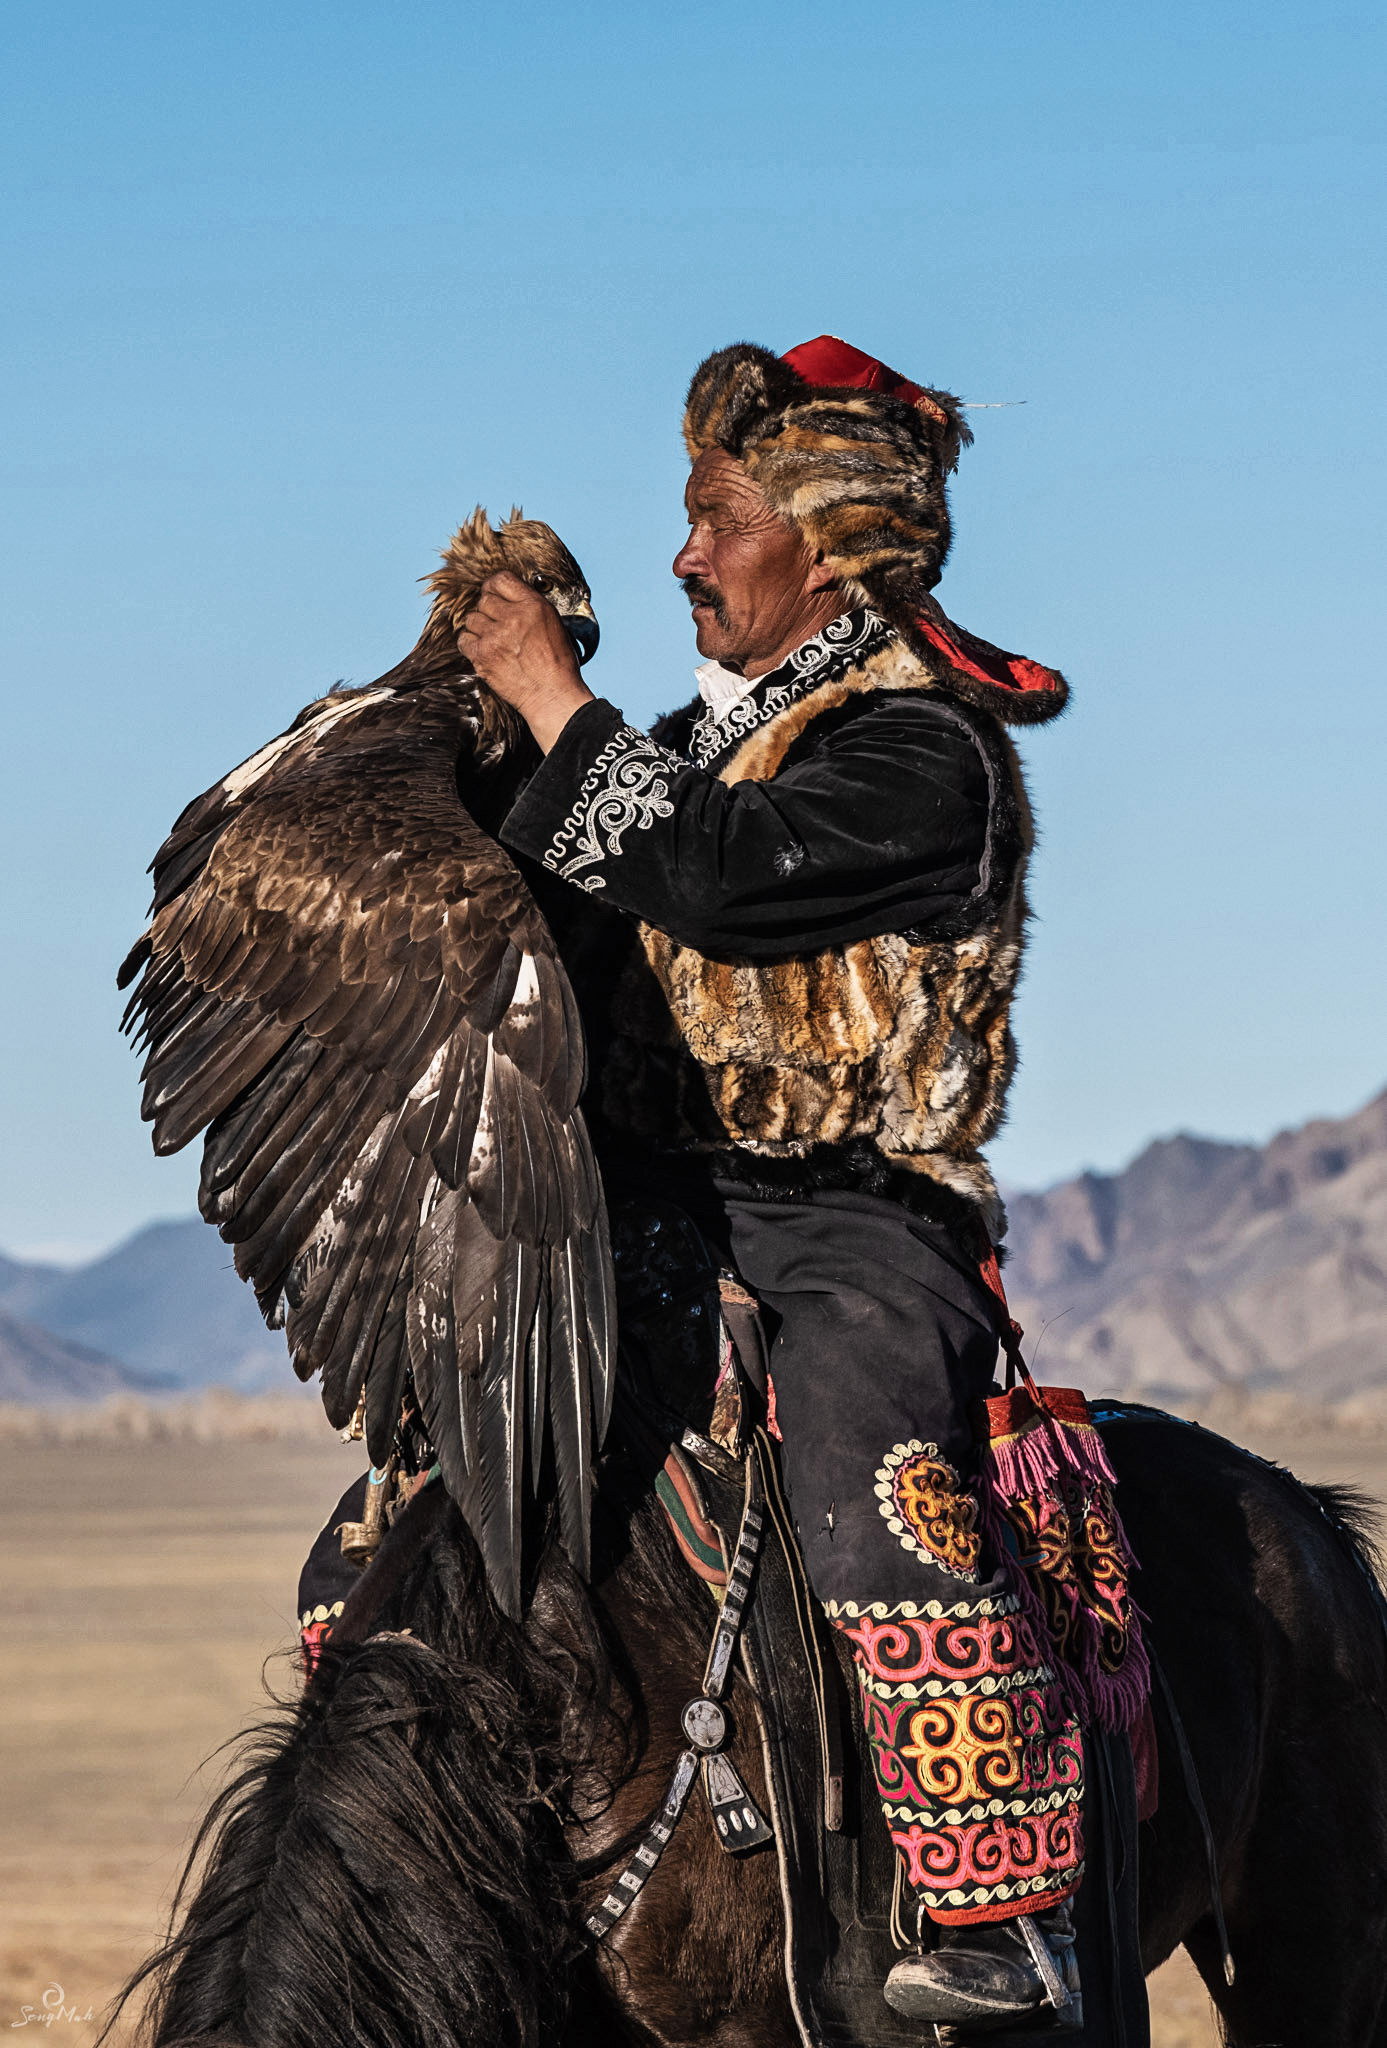 The bond between an eagle and a hunter